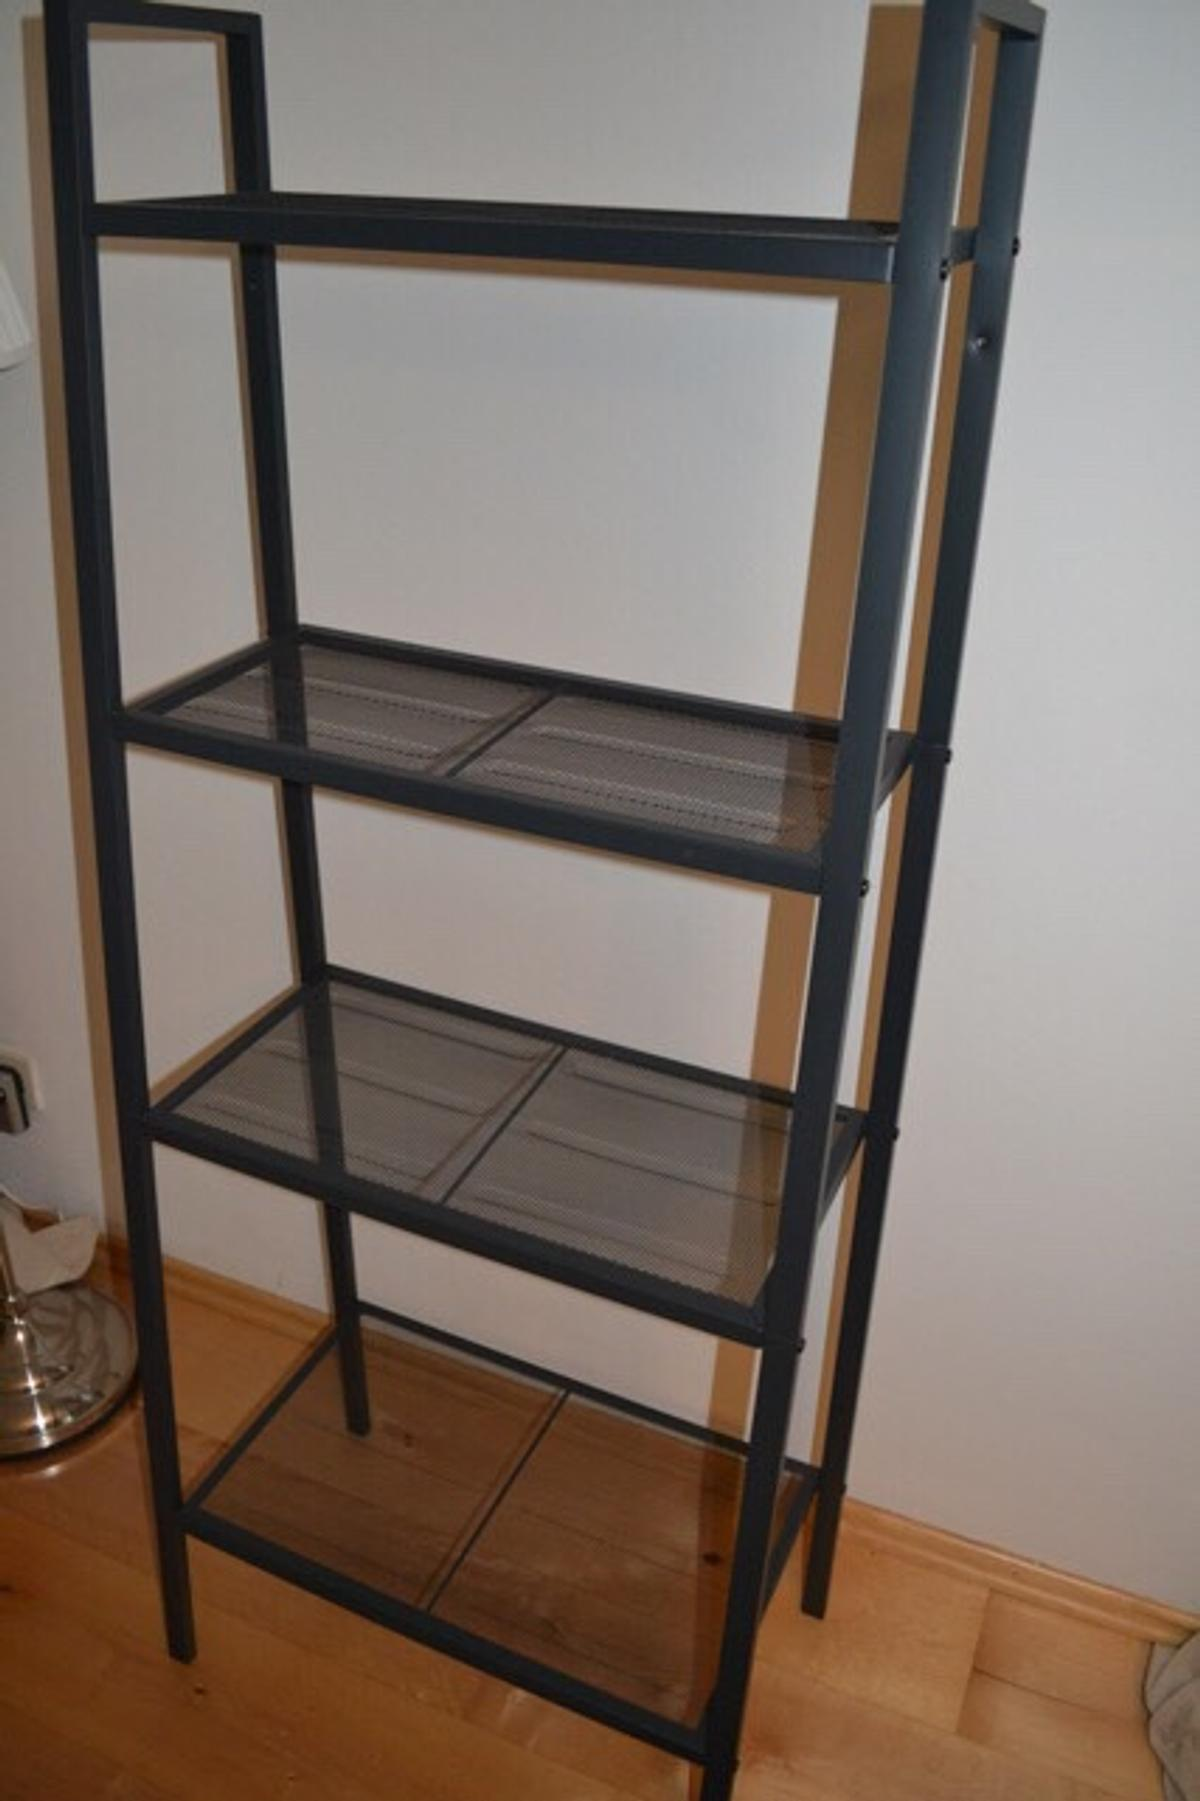 Ikea Regal Metall In 82327 Tutzing For 25 00 For Sale Shpock